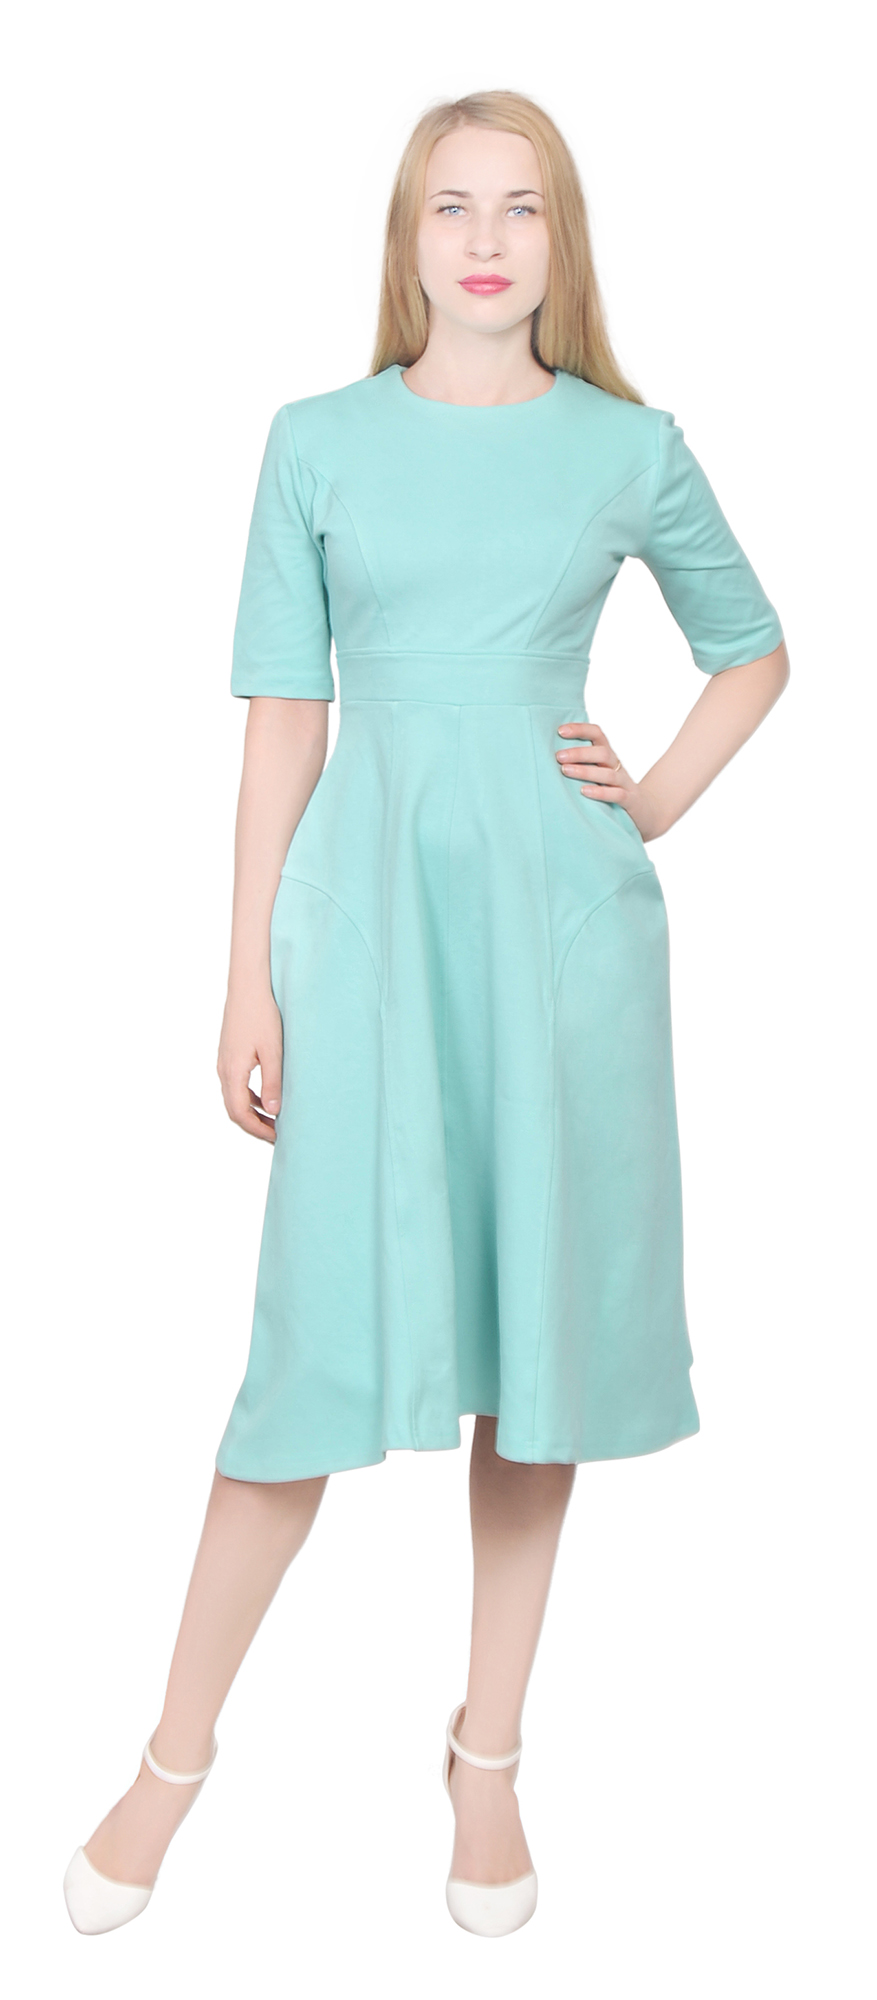 WOMENS ELEGANT LONG TEA MIDI DRESS CASUAL OFFICE WEAR TO WORK ...